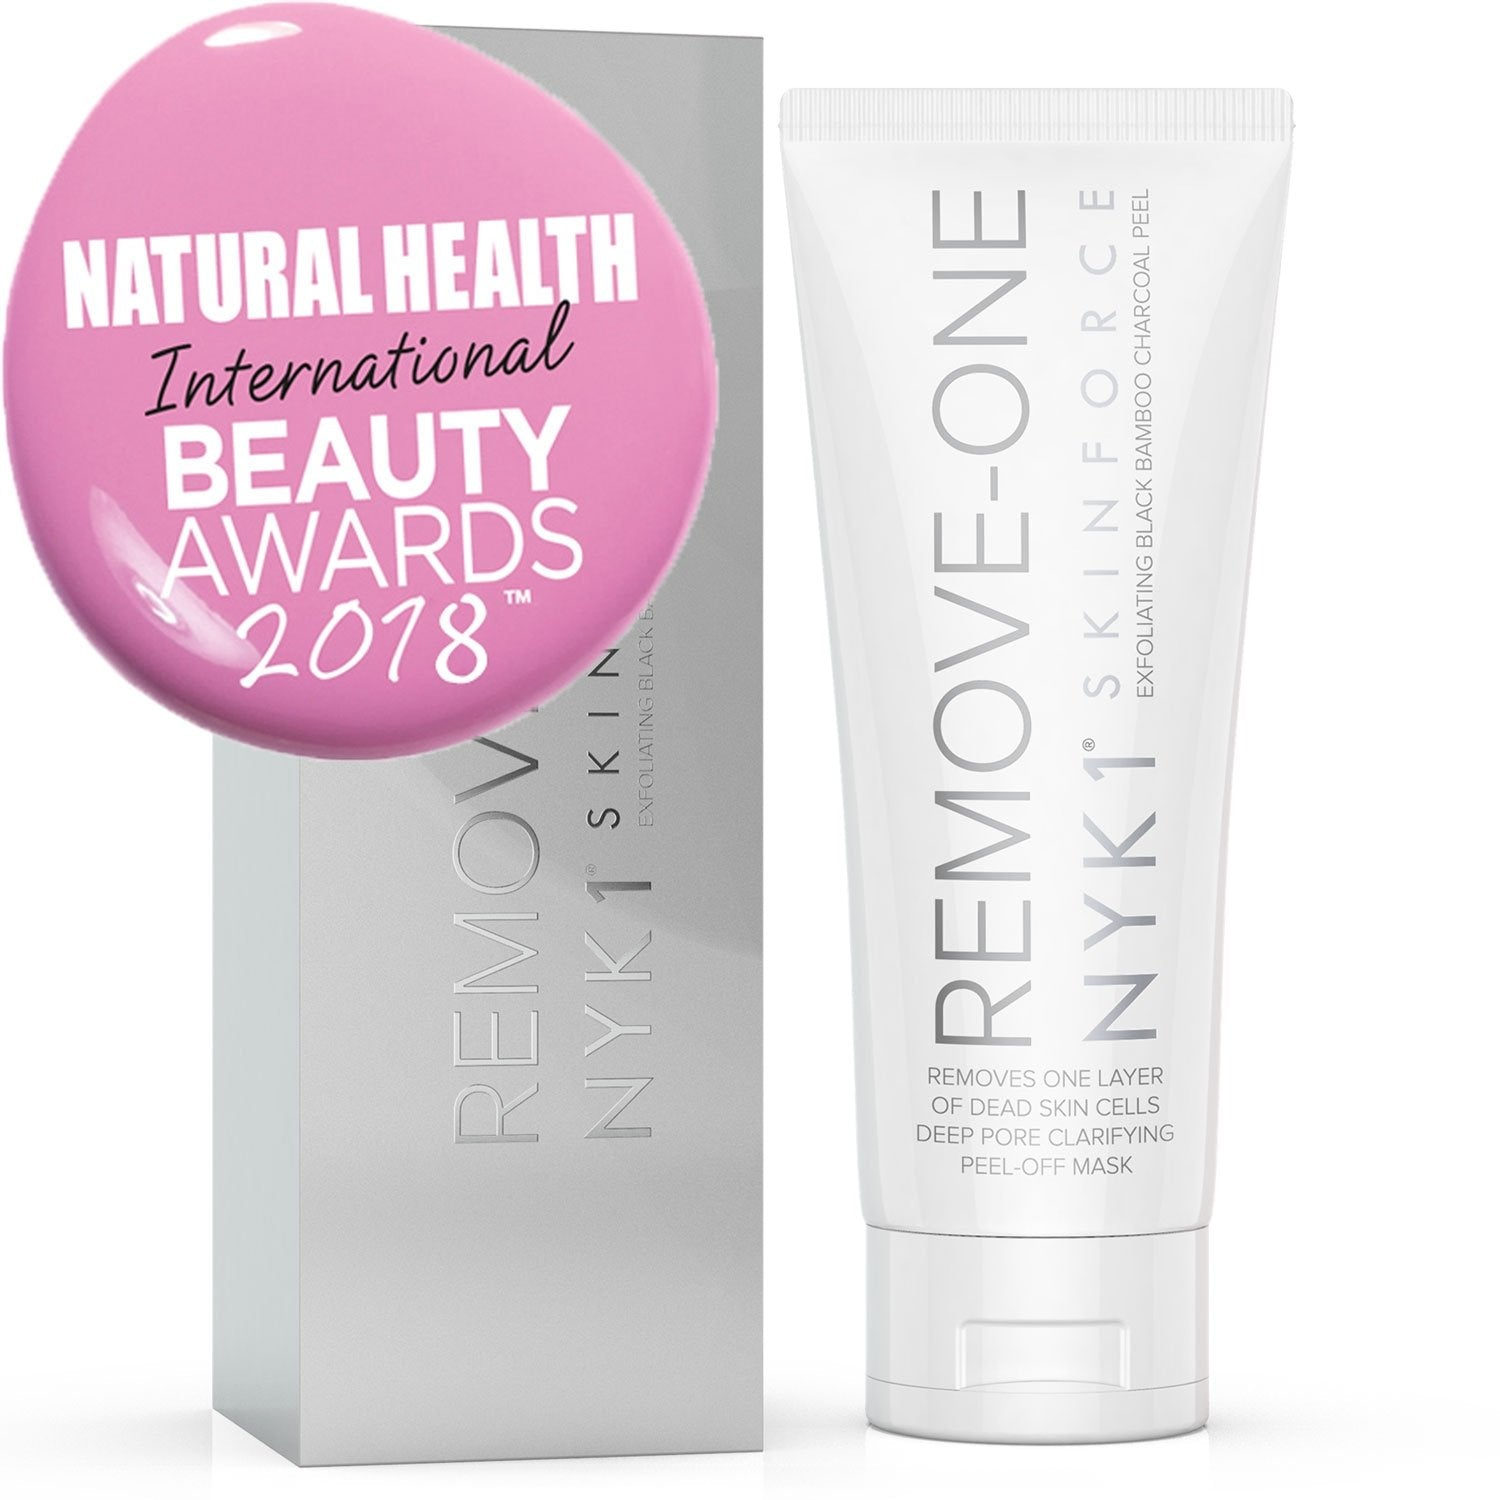 NYK1 Removeone Exfoliating Face Mask